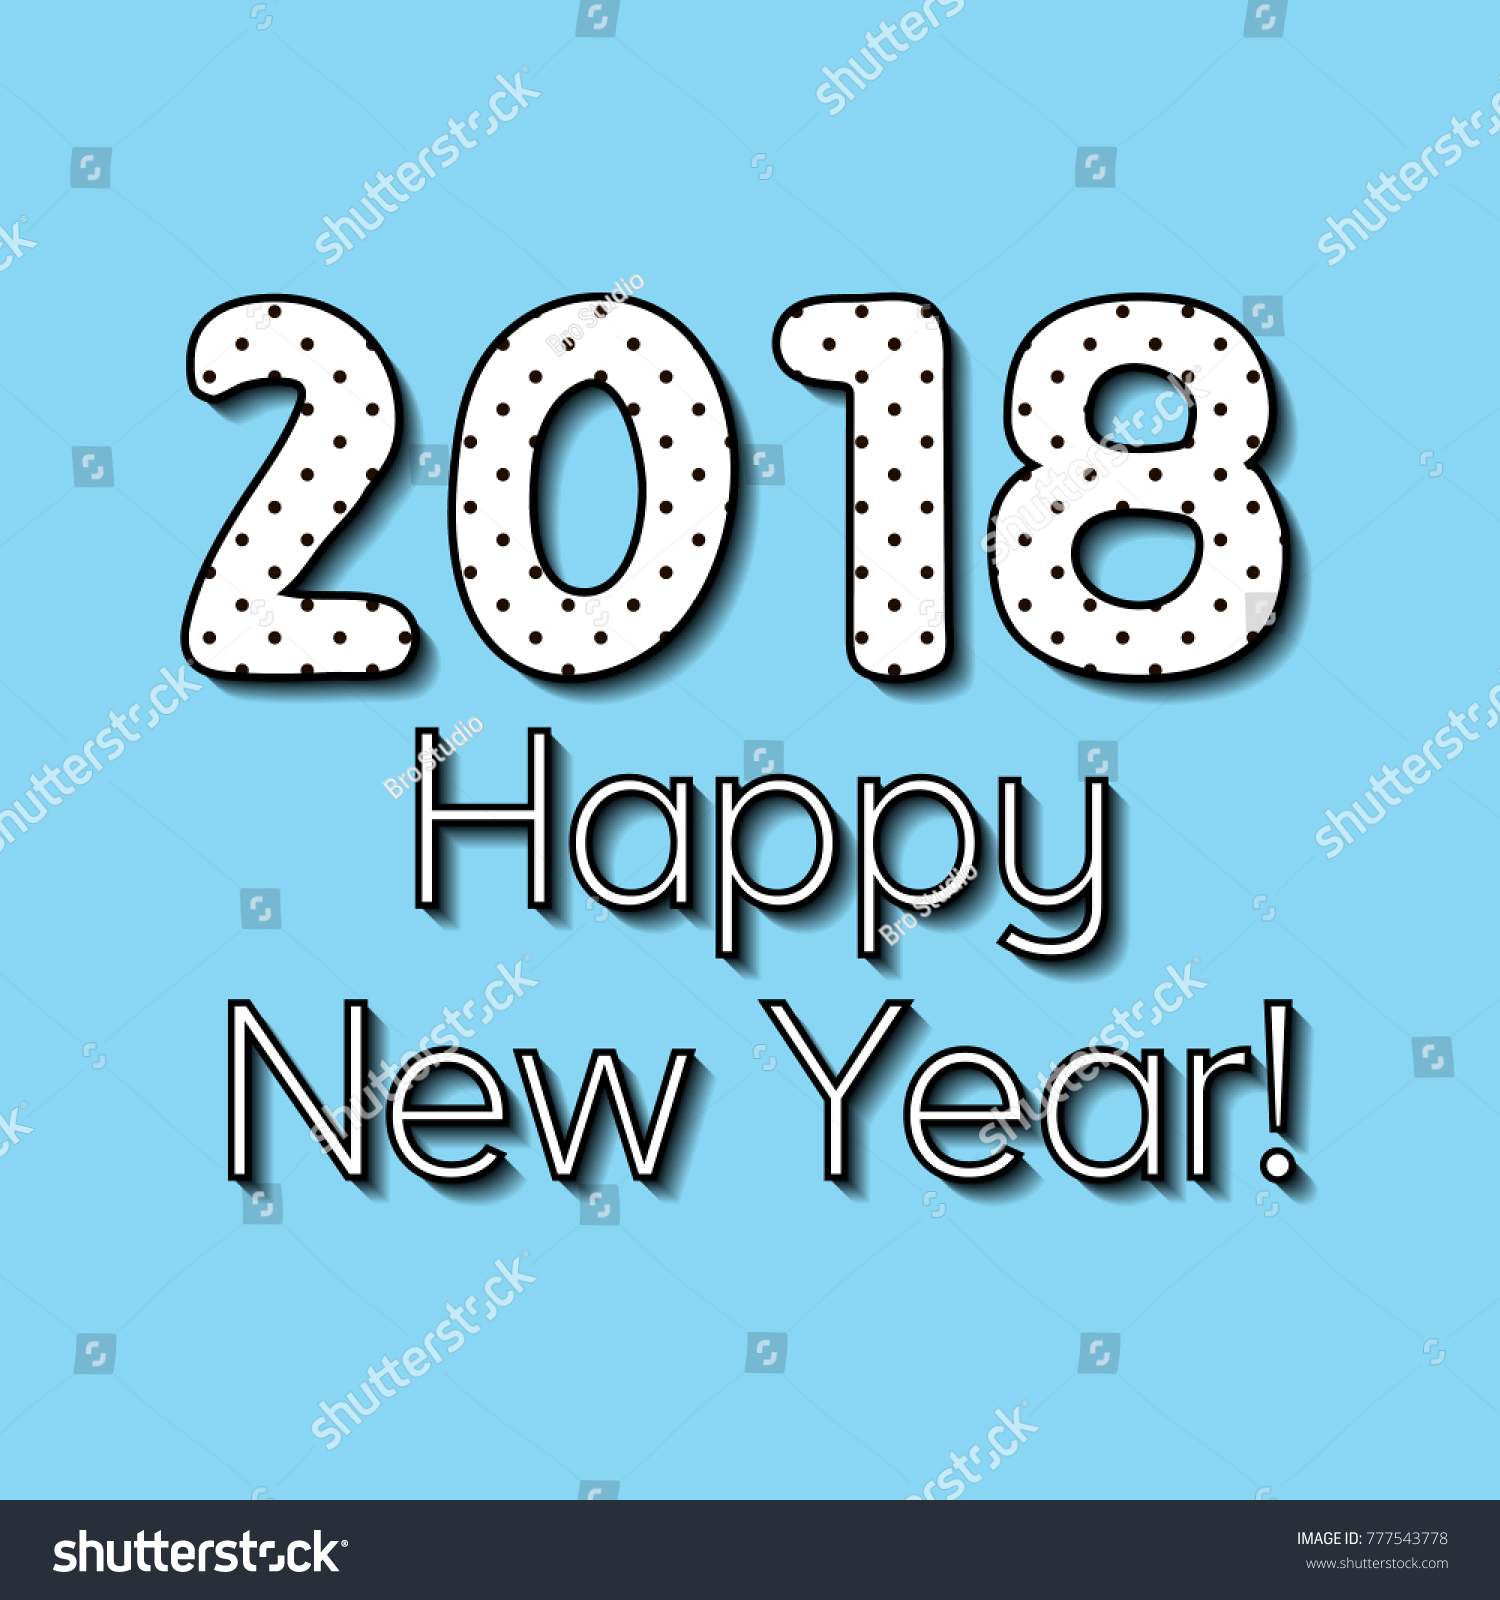 Simple greeting eve nye new year stock photo photo vector simple greeting eve nye new year 2018 the vector text the phrase the word m4hsunfo Image collections